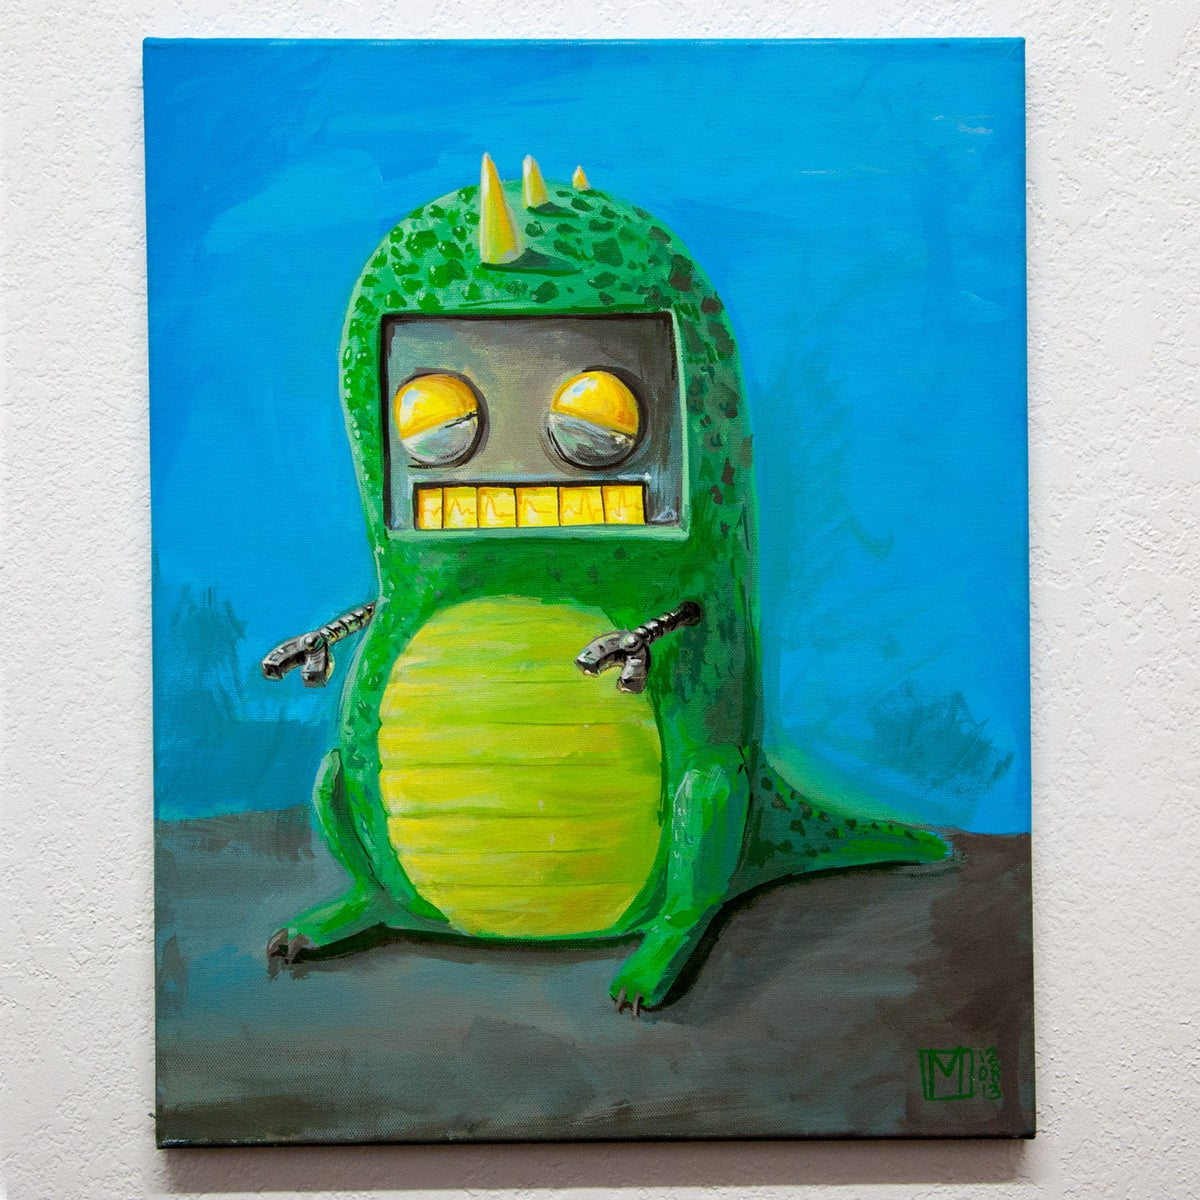 Image of Robot in a dino suit